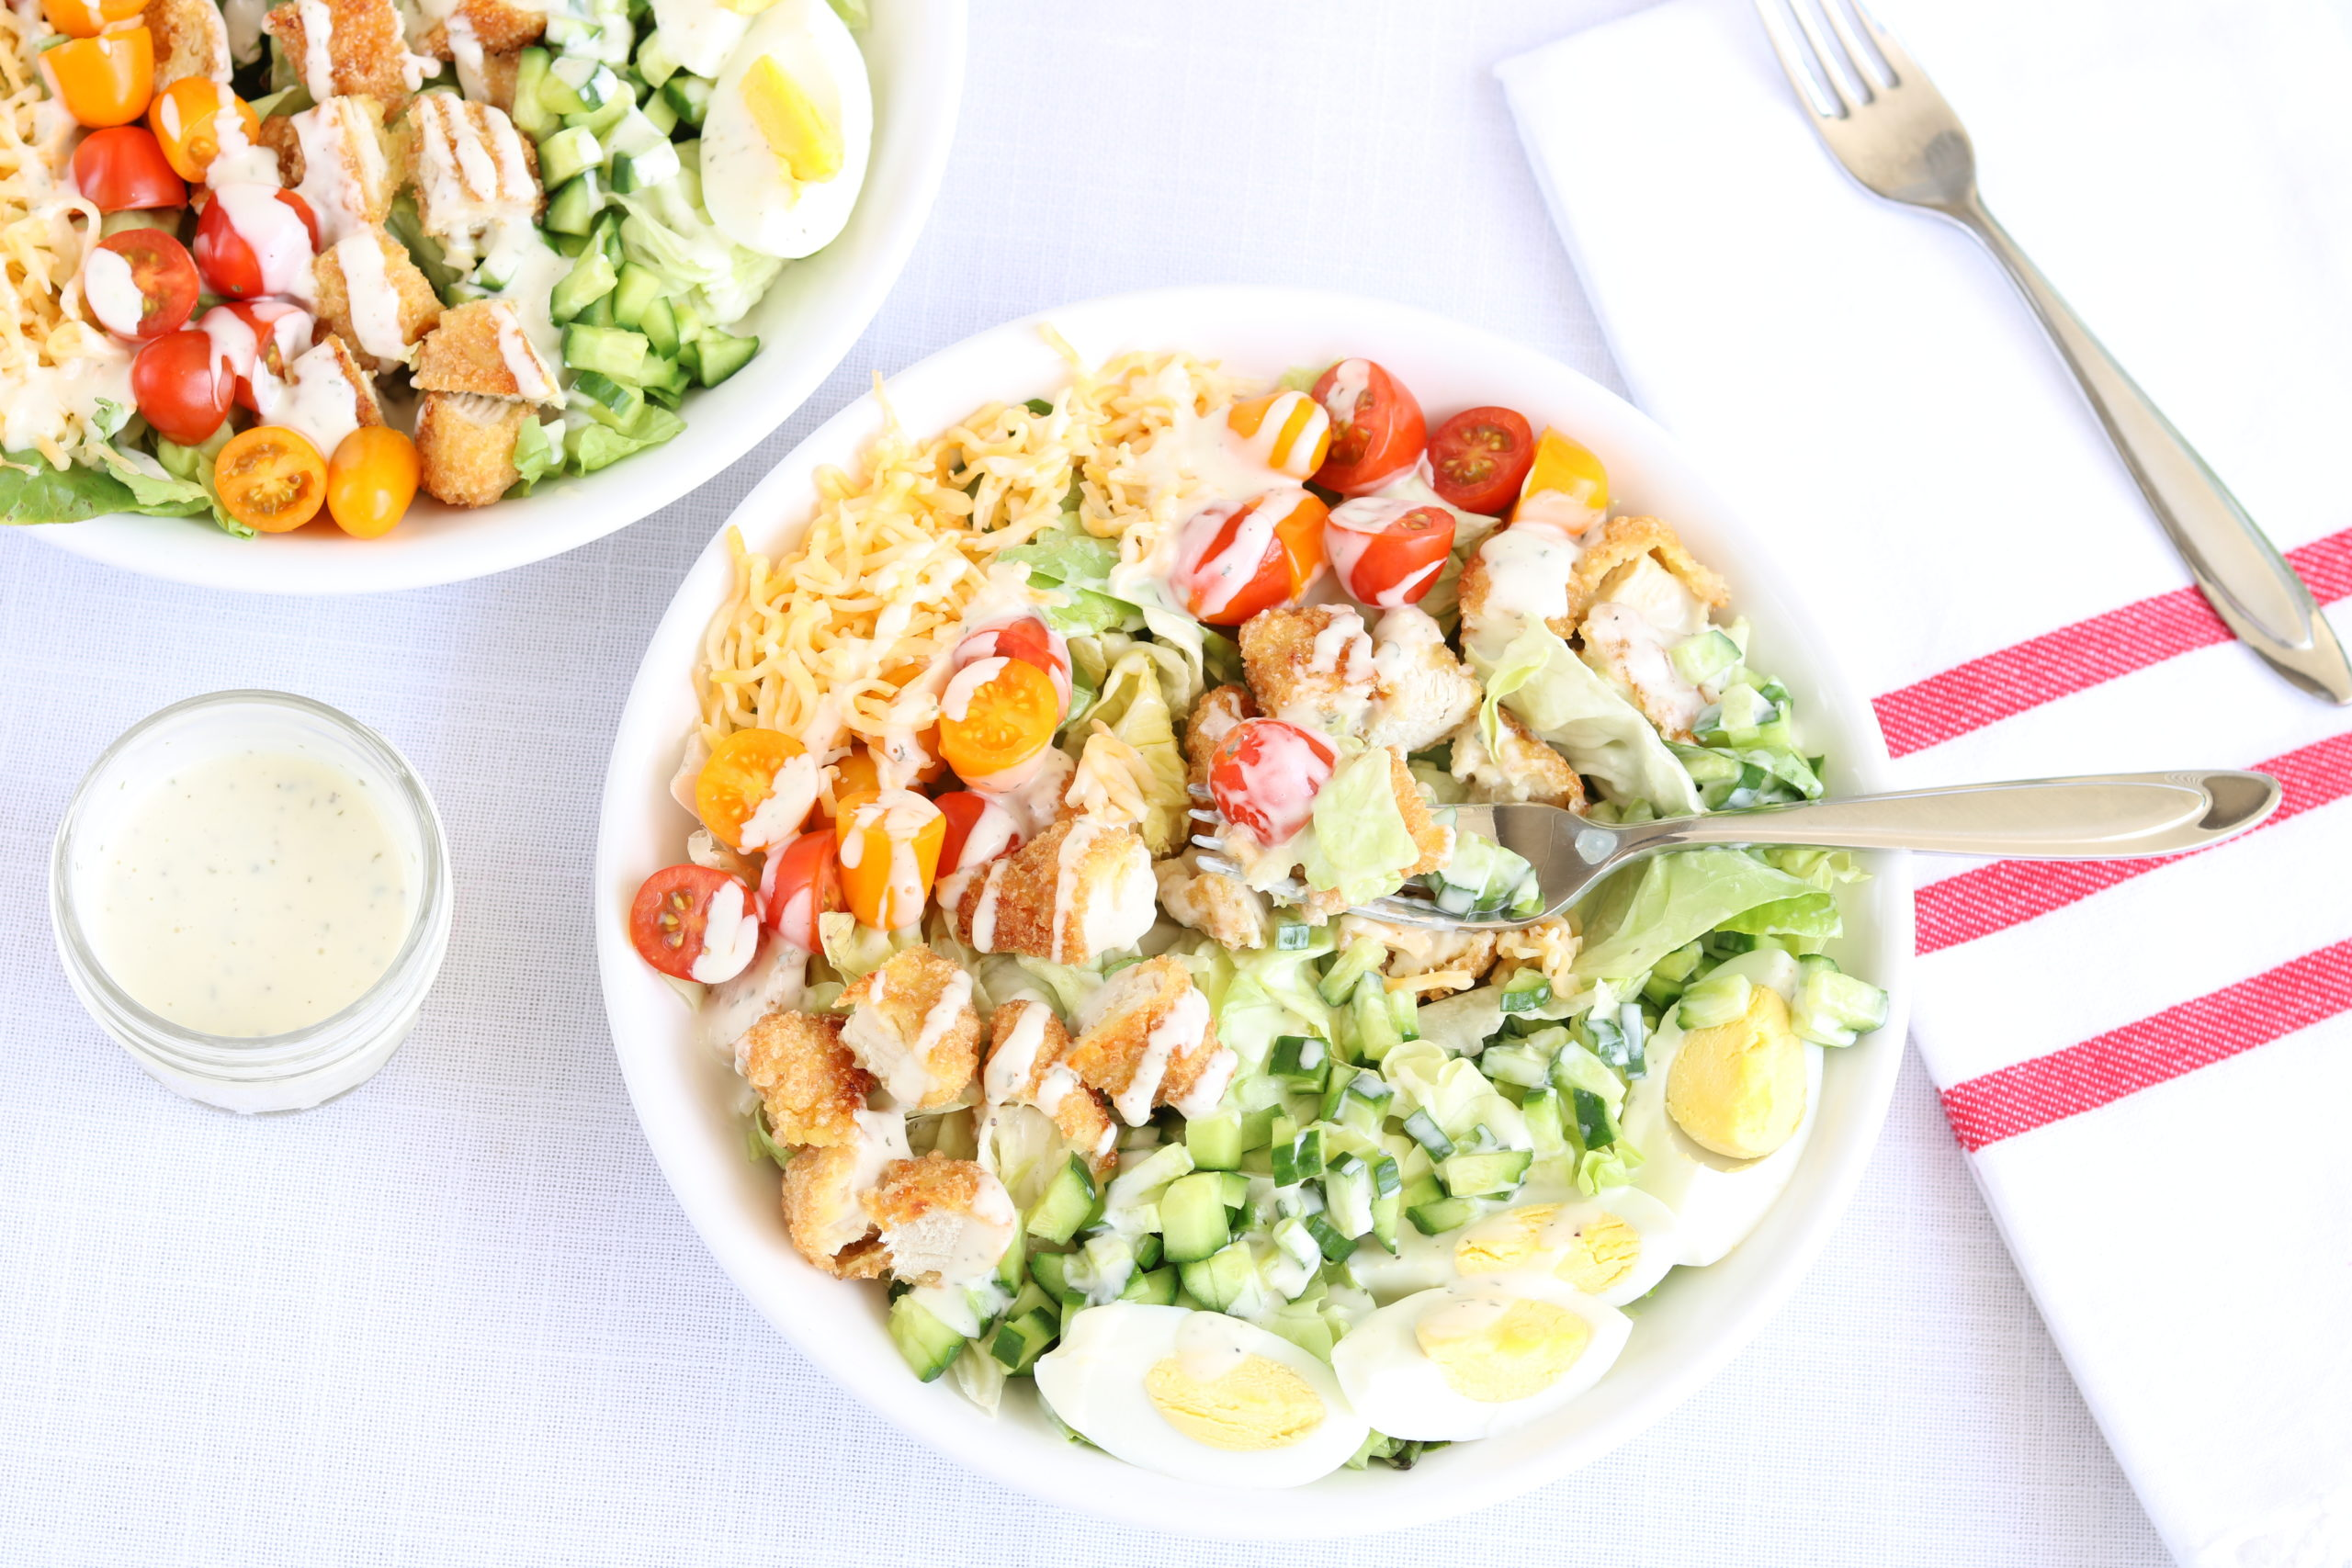 Gluten-Free Cobb Salad with Ranch Dressing